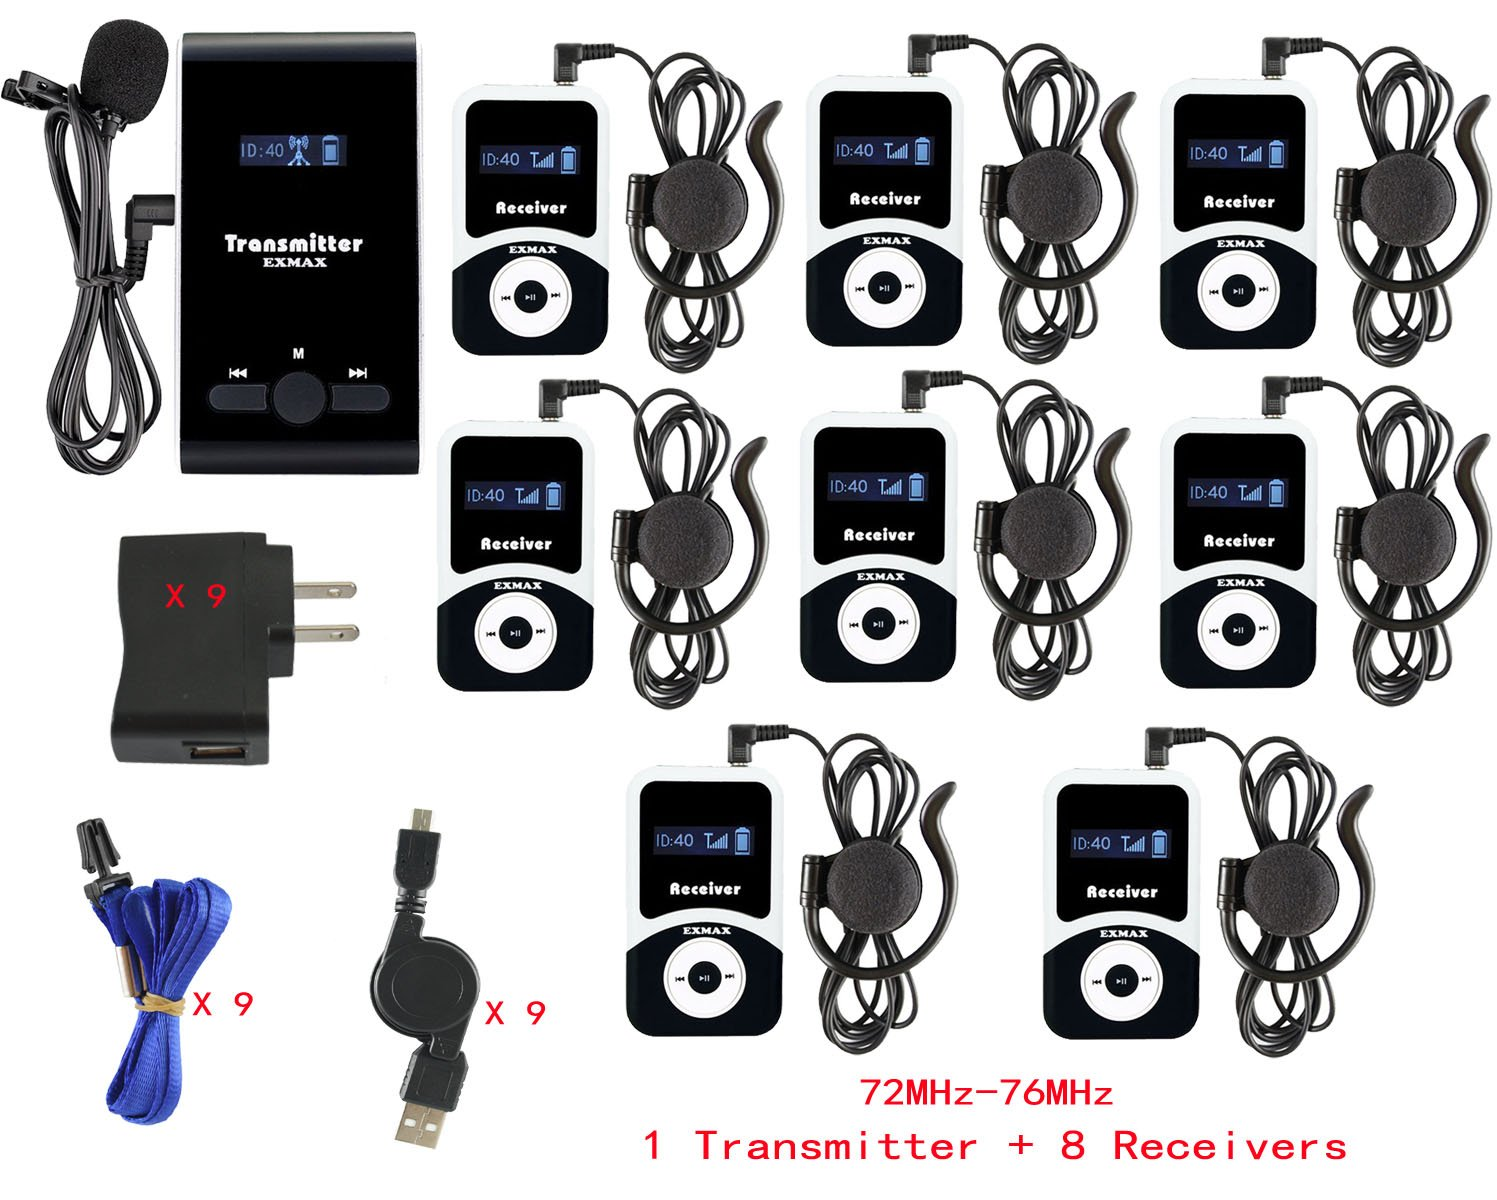 EXMAX ATG-100T 72-76MHz Wireless Tour Guide Monitoring System Microphone Earphone Headset for Church Simultaneous Interpreting Teaching Conference Travel Museum Translation(1 Transmitter 8 Receivers)